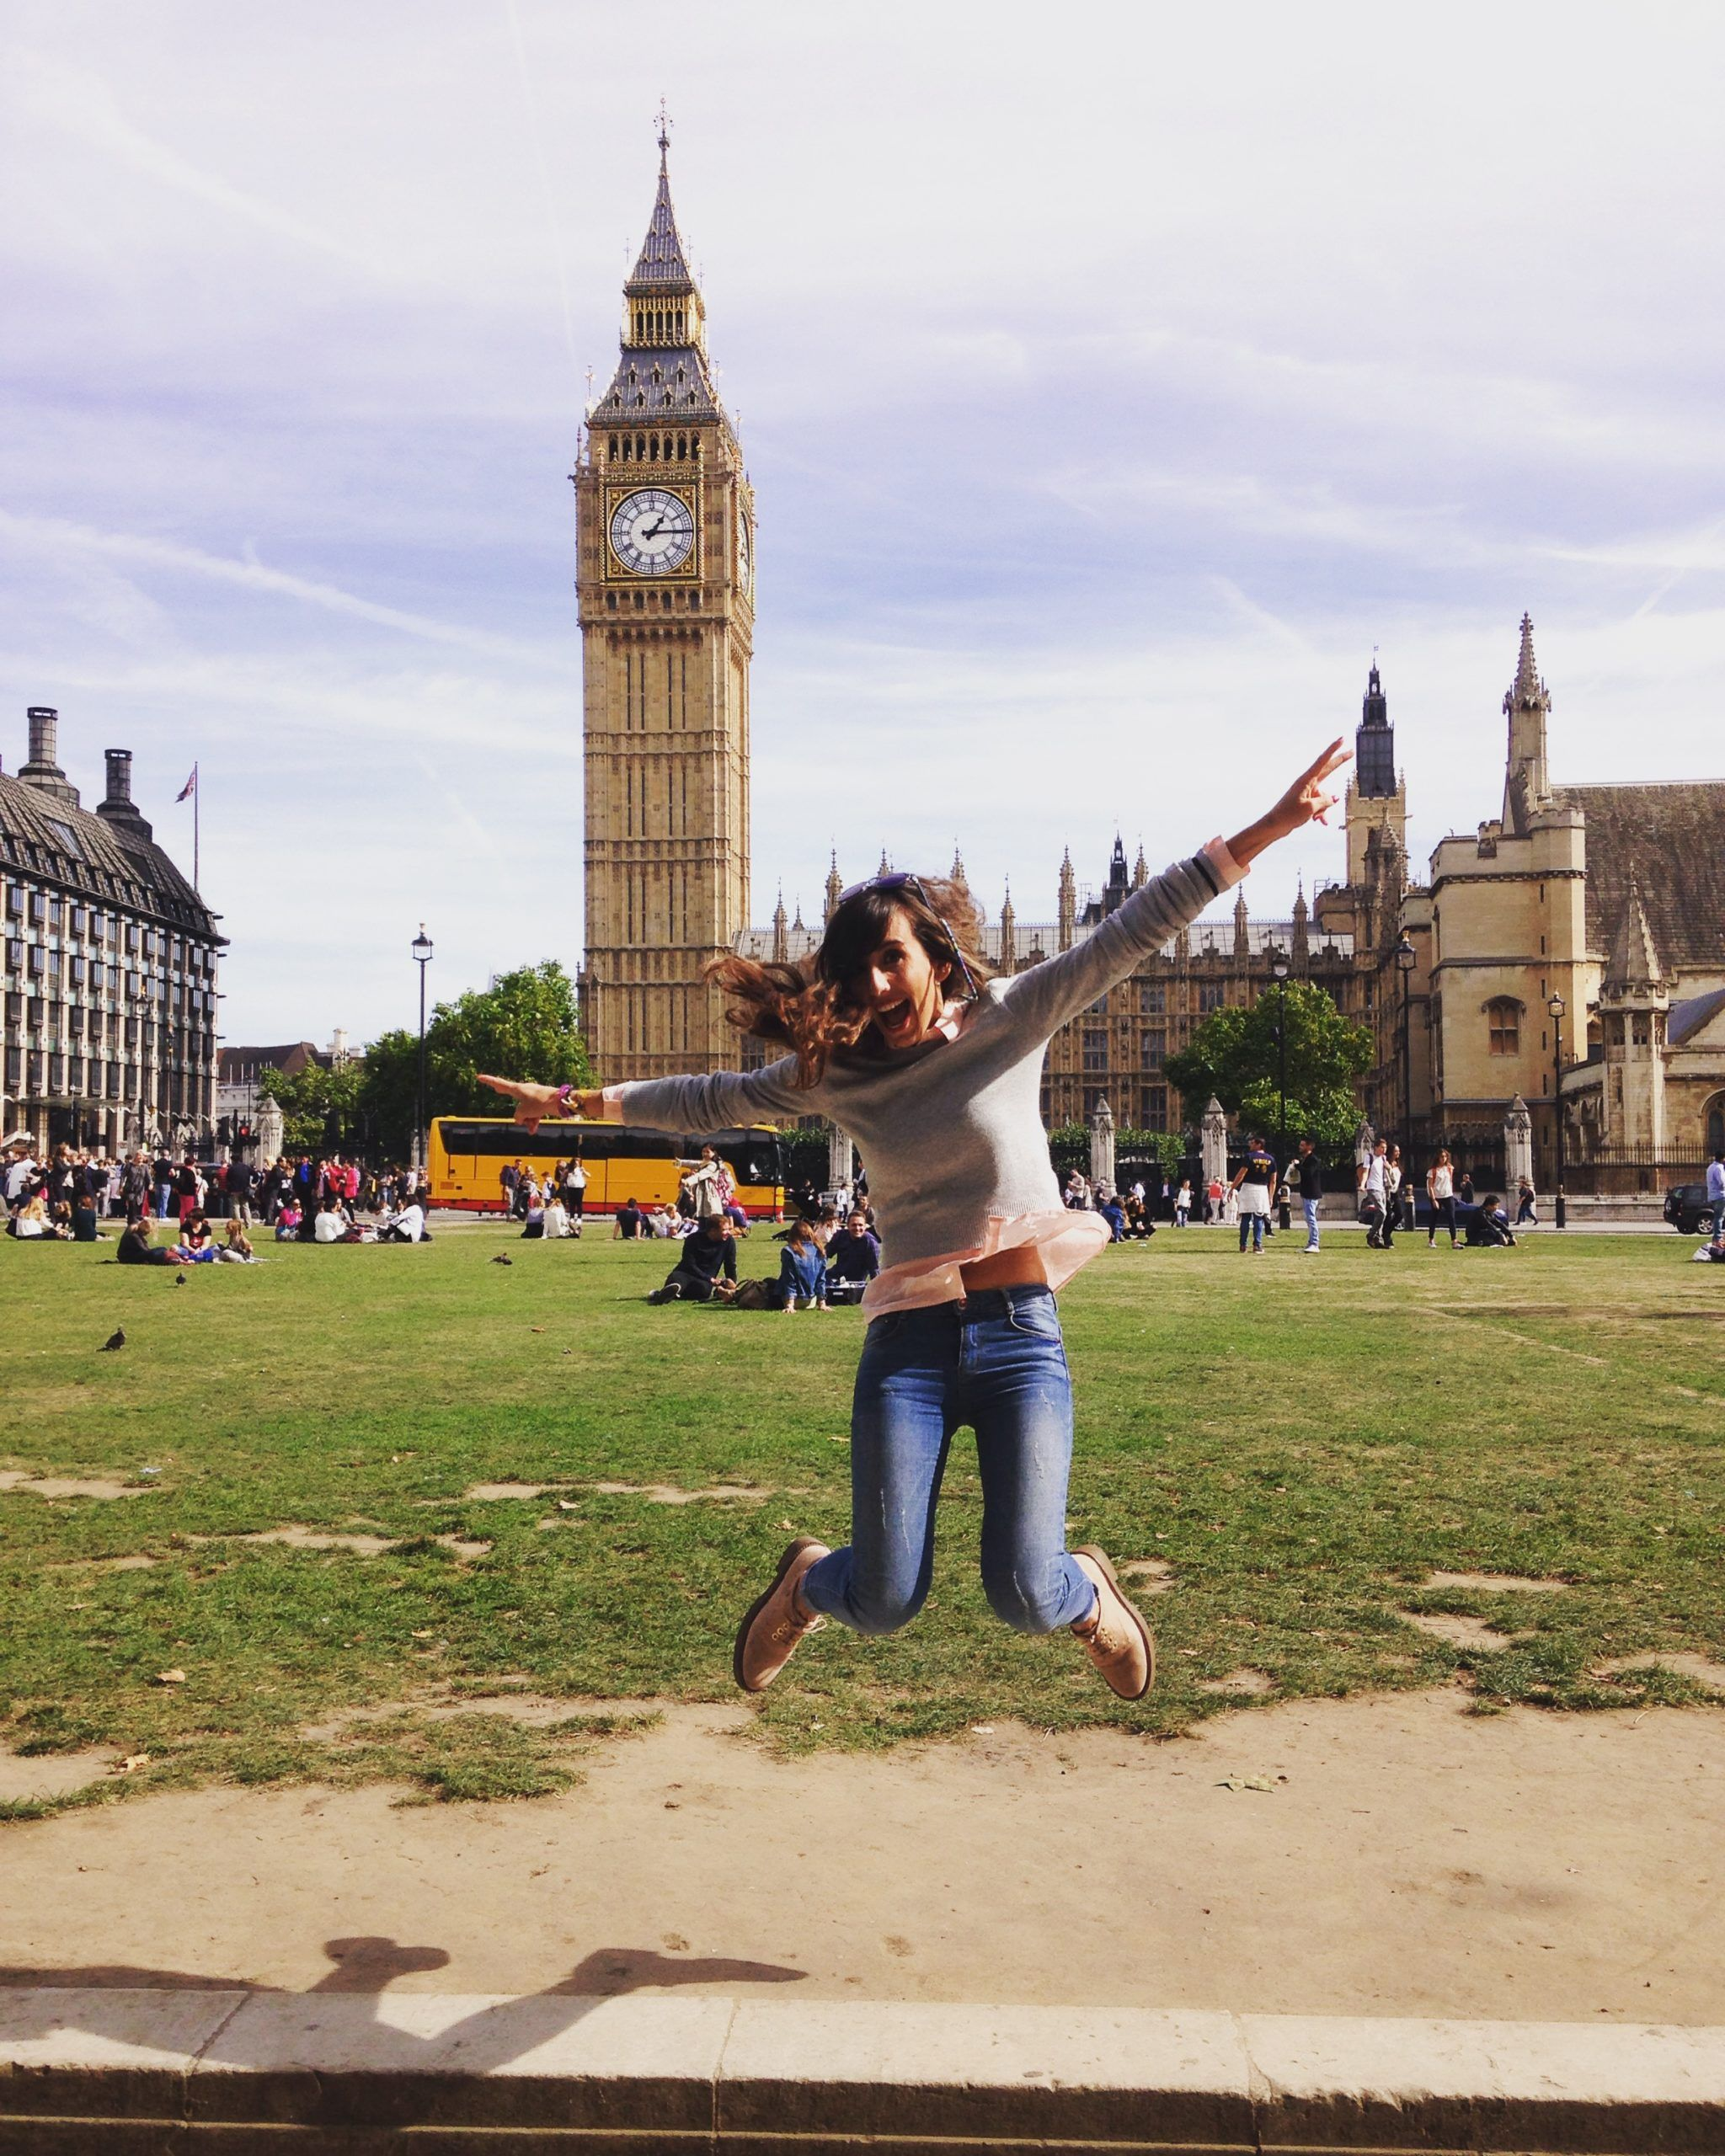 Judit, jumping into a new life in London!